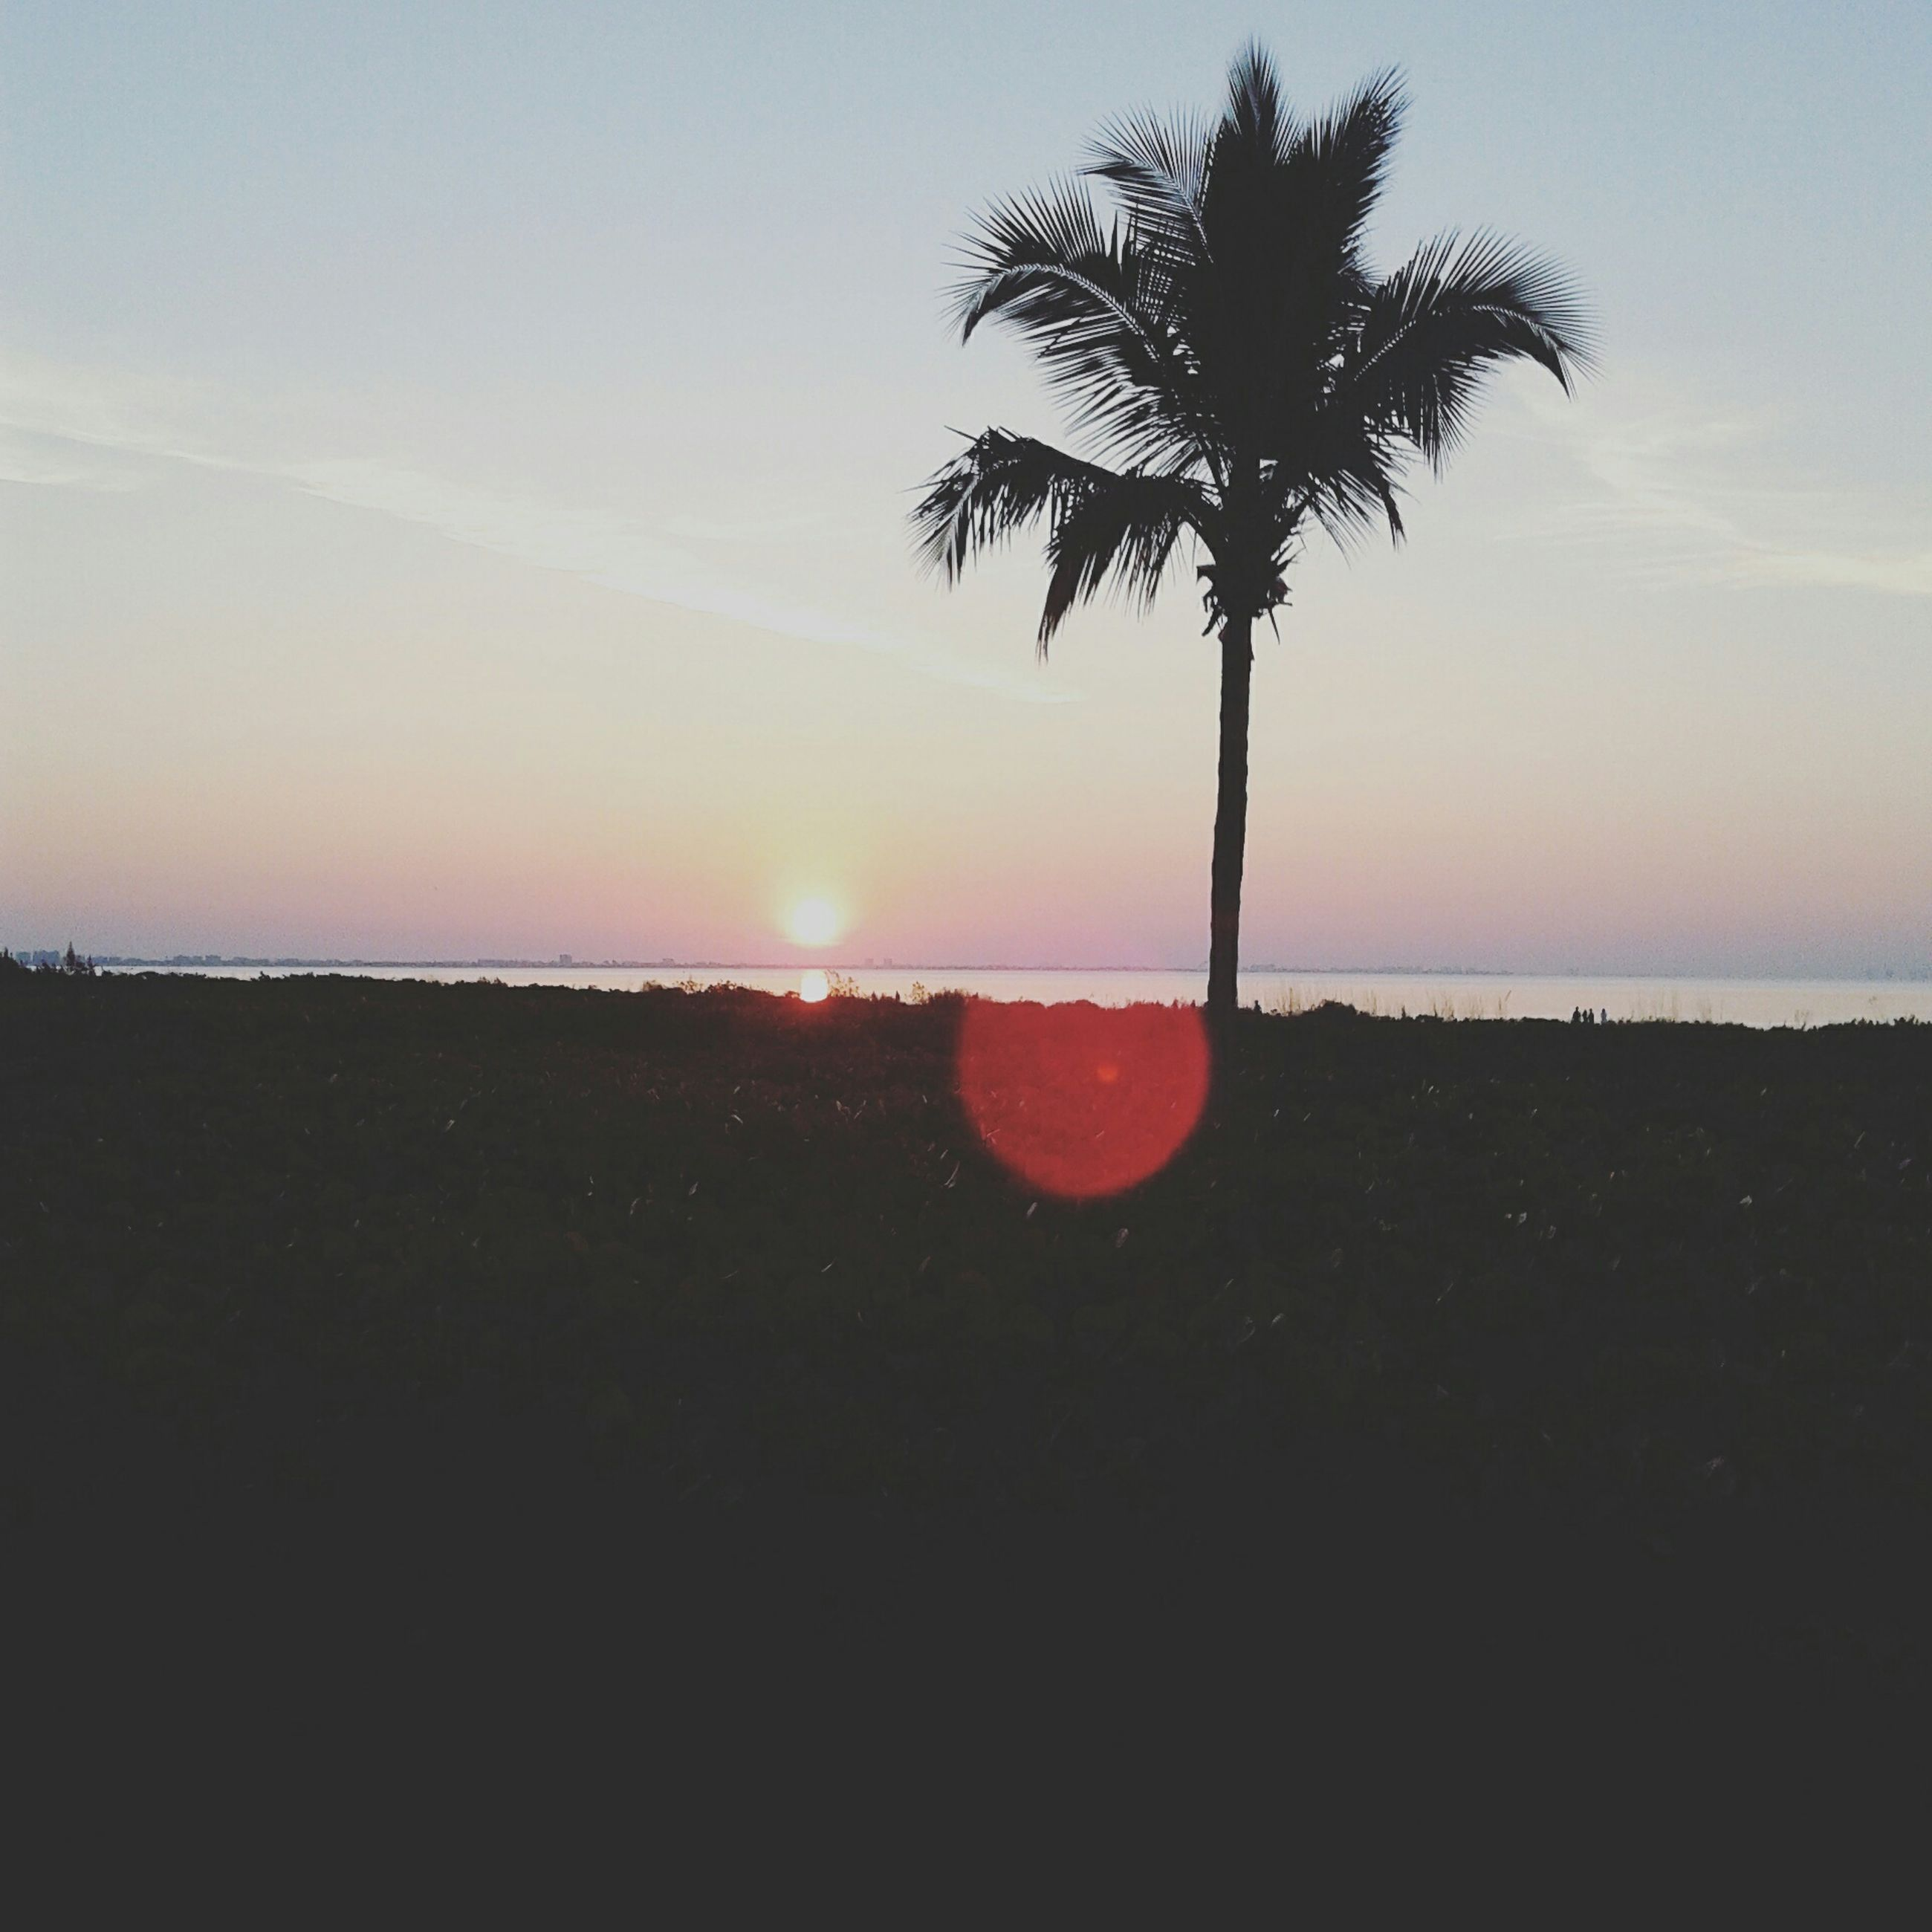 sunset, horizon over water, sea, tranquil scene, scenics, tranquility, silhouette, beauty in nature, water, sun, beach, sky, tree, palm tree, nature, idyllic, orange color, shore, growth, outdoors